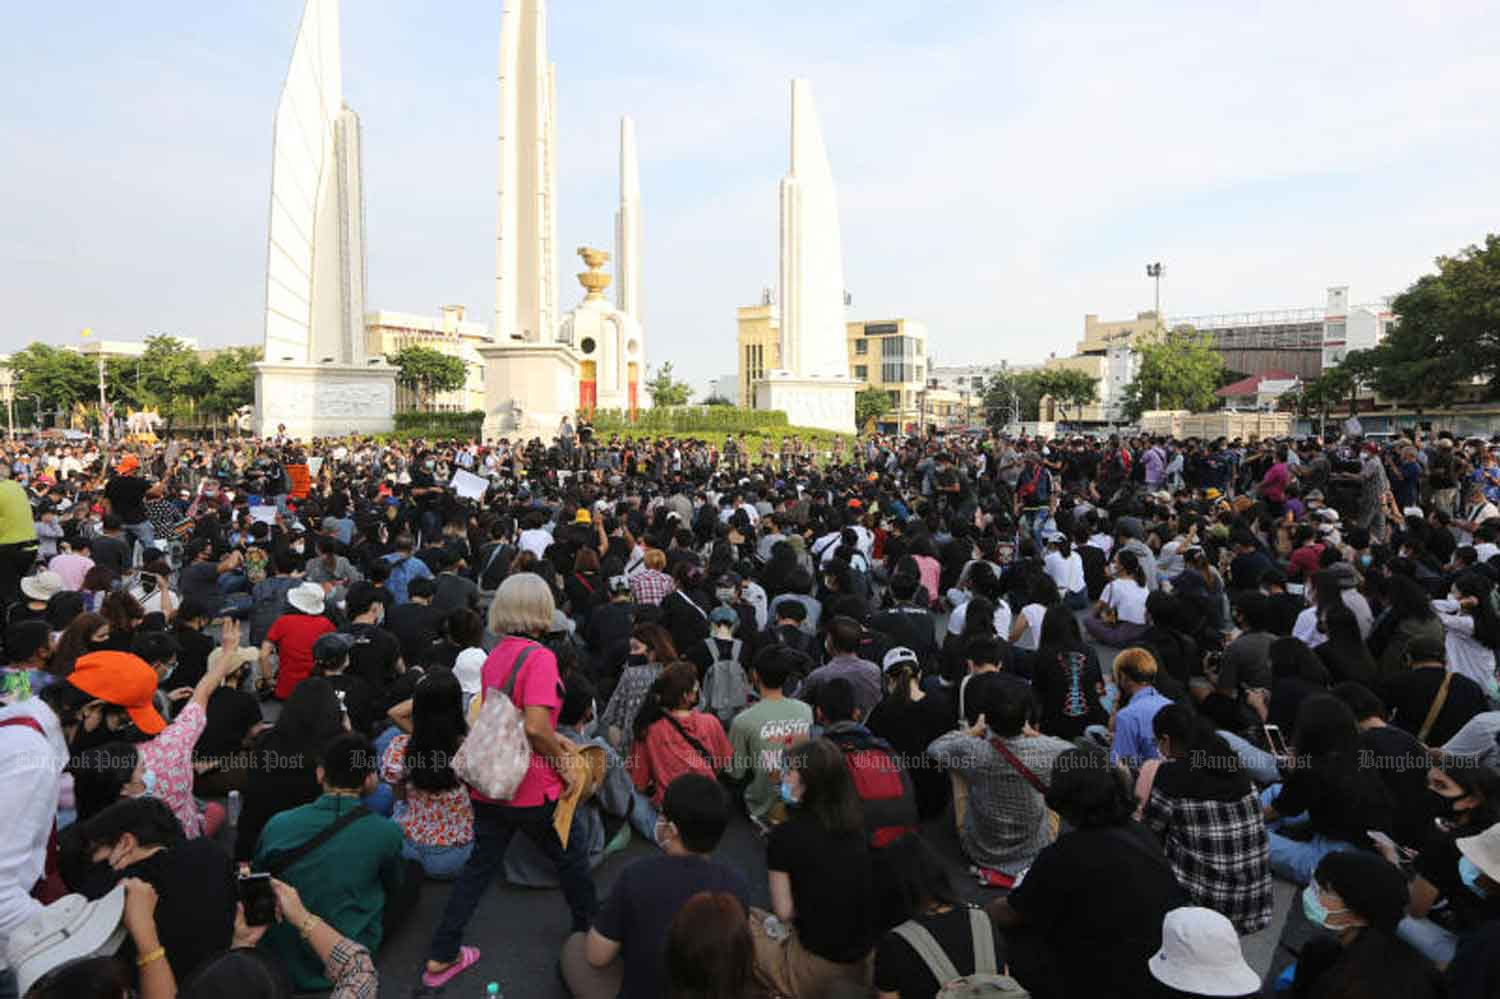 Anti-government protesters gather at the Democracy Monument in Bangkok on July 18. (Photo: Wichan Charoenkiatpakul)